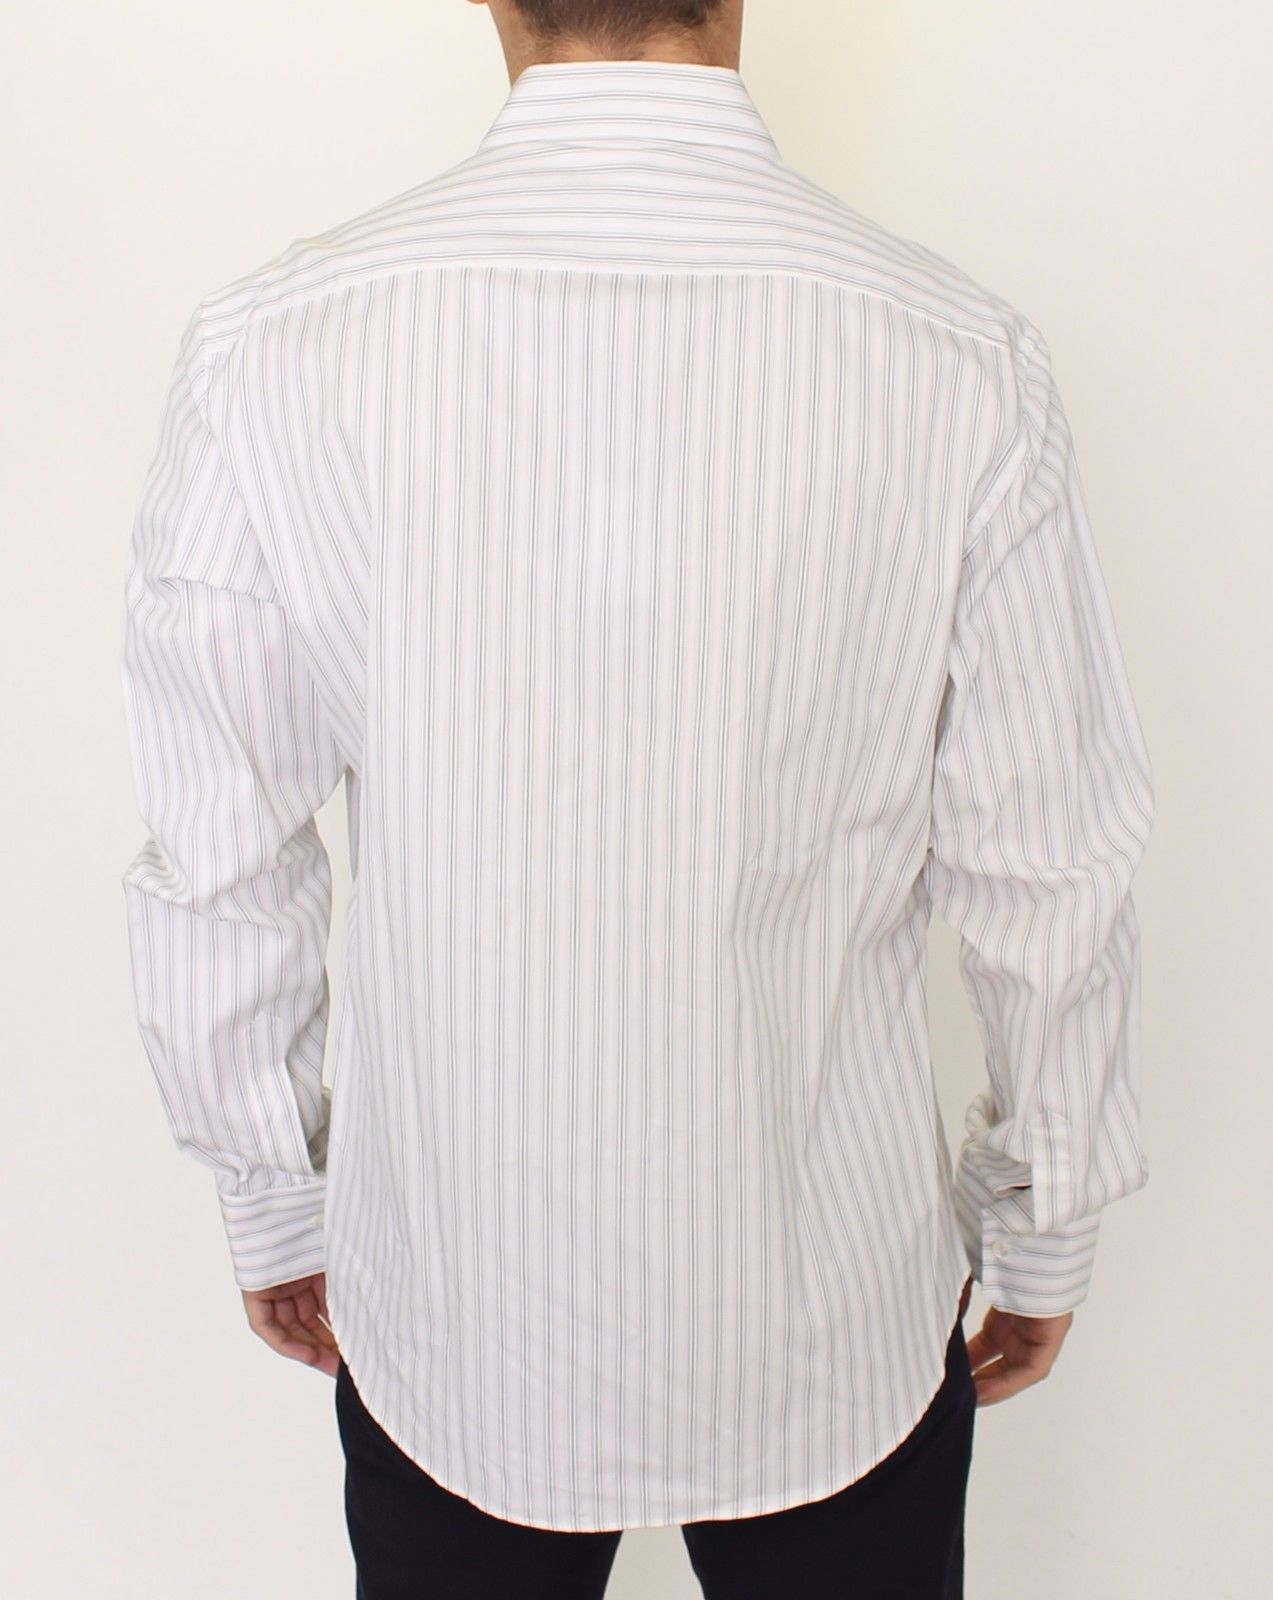 Ermanno Scervino White Black Striped Regular Fit Casual Shirt